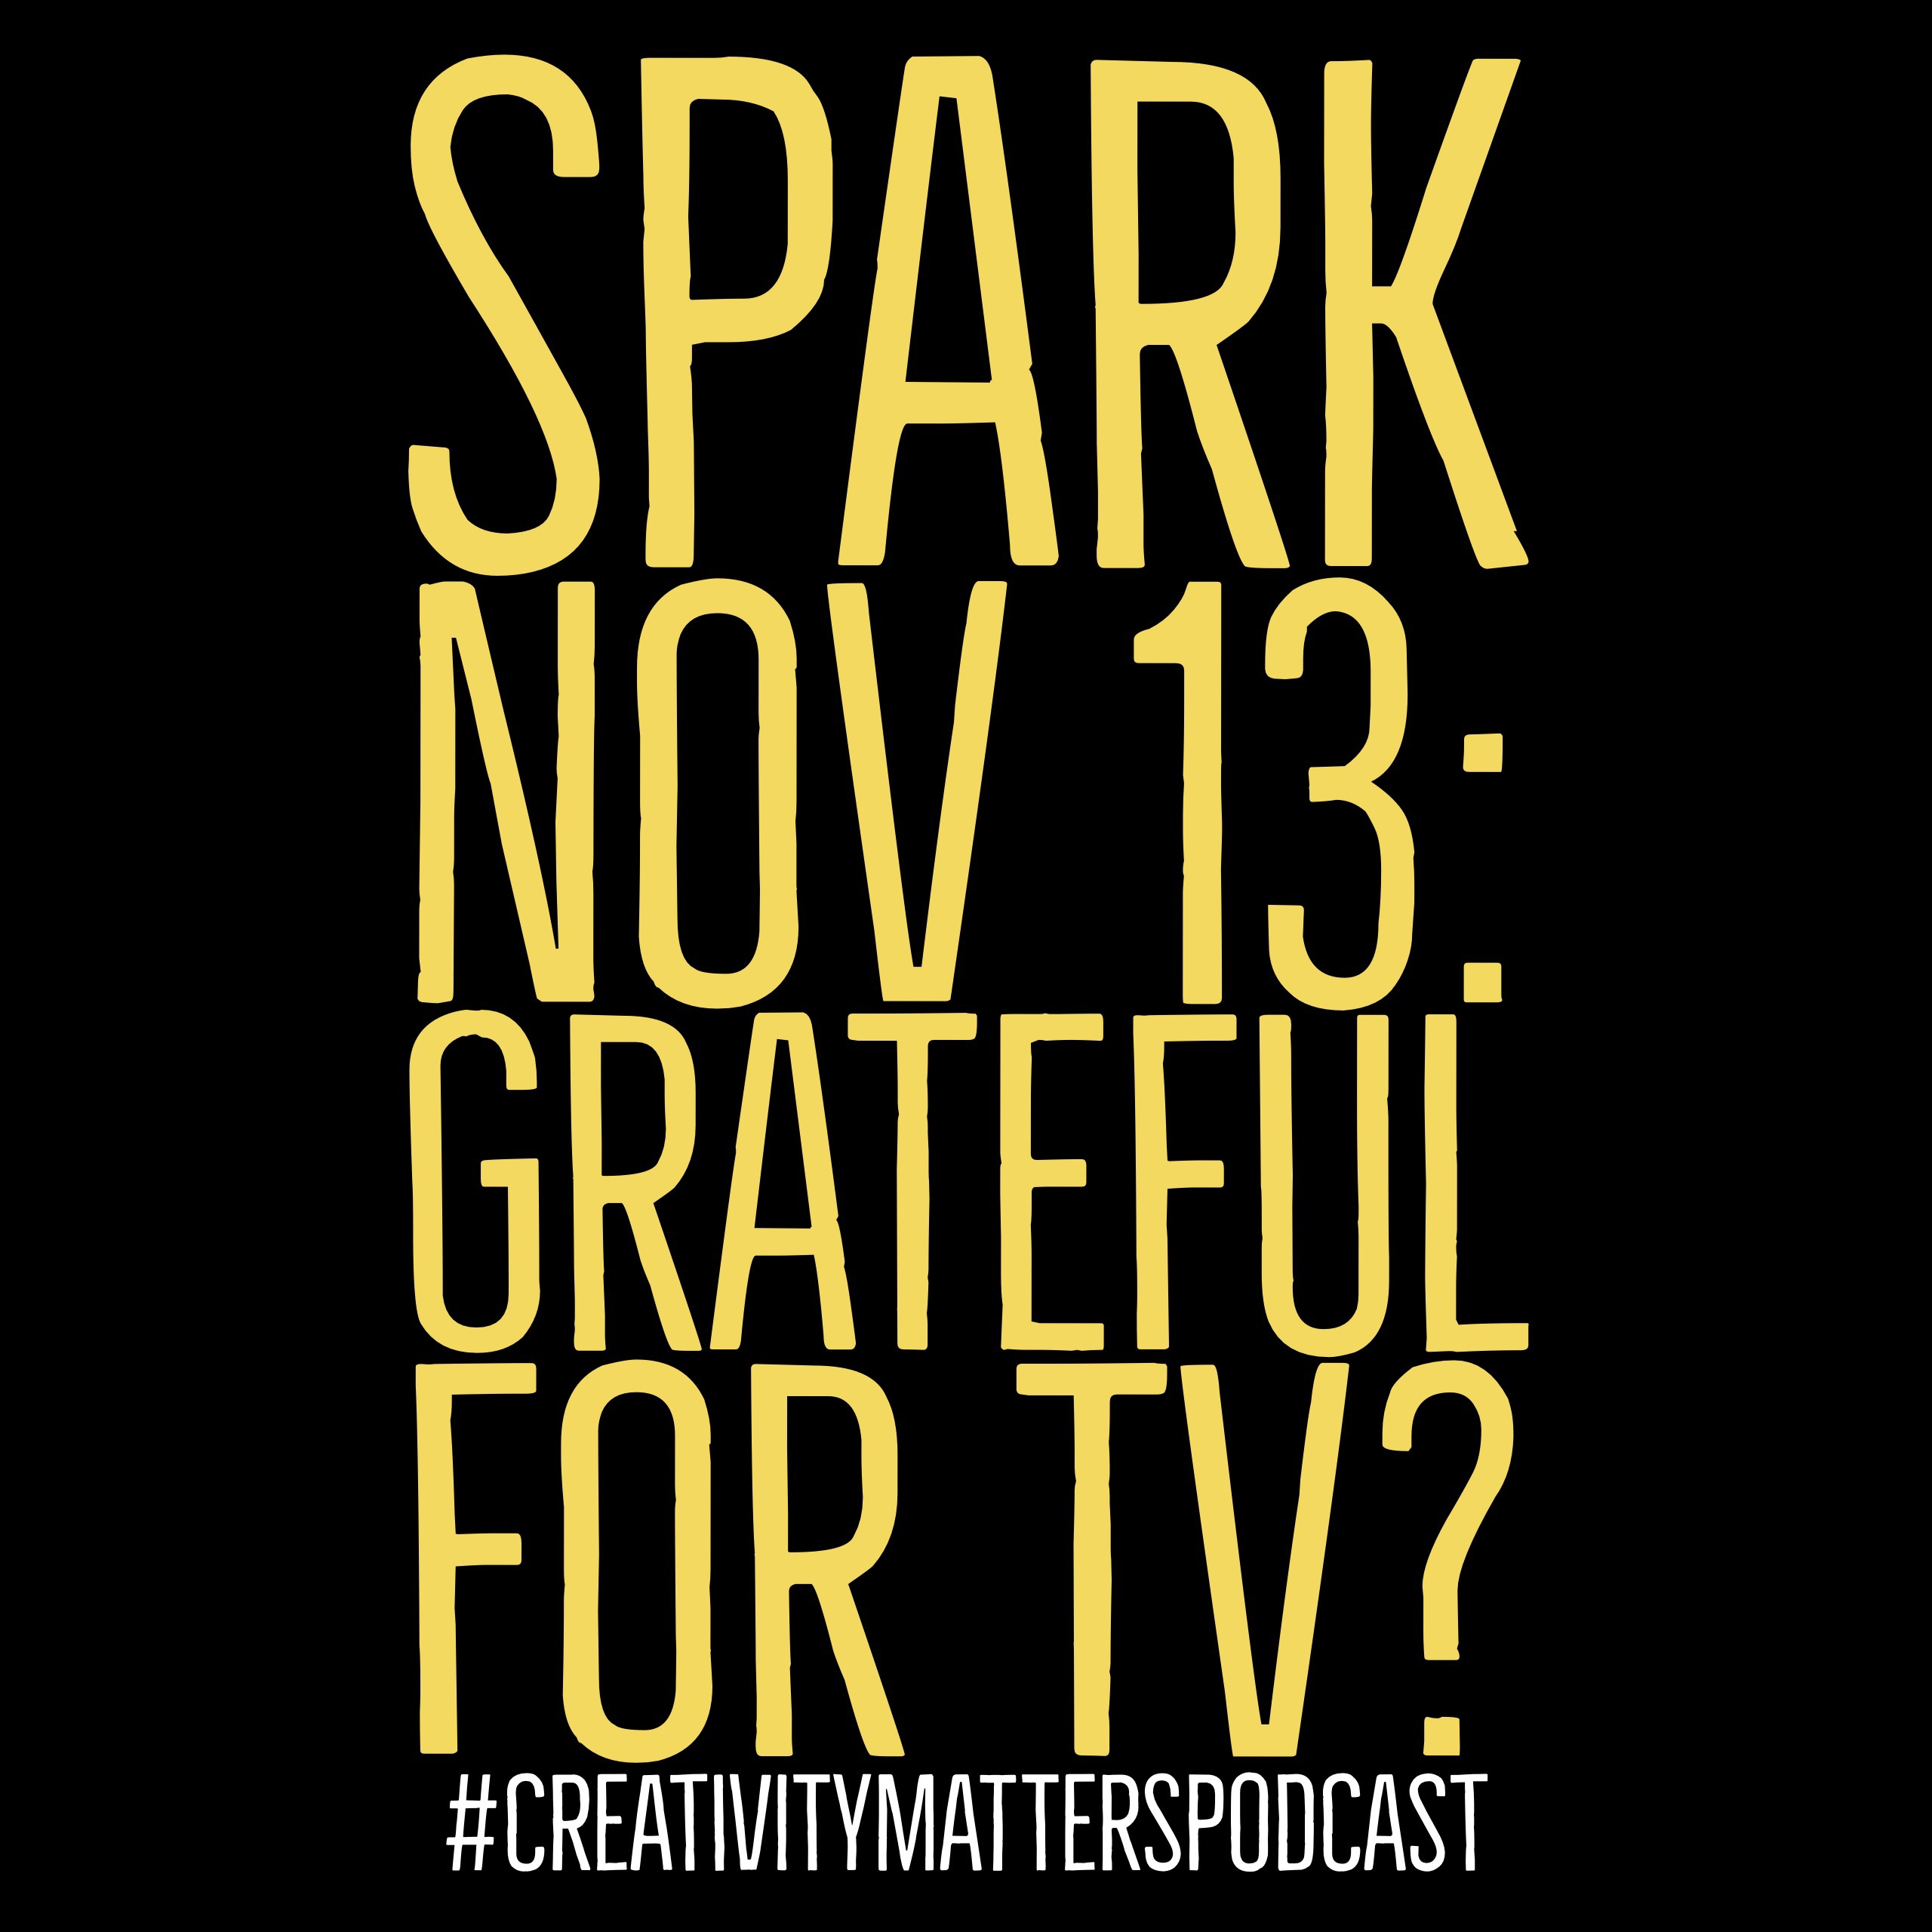 Spark 13: Grateful for TV?